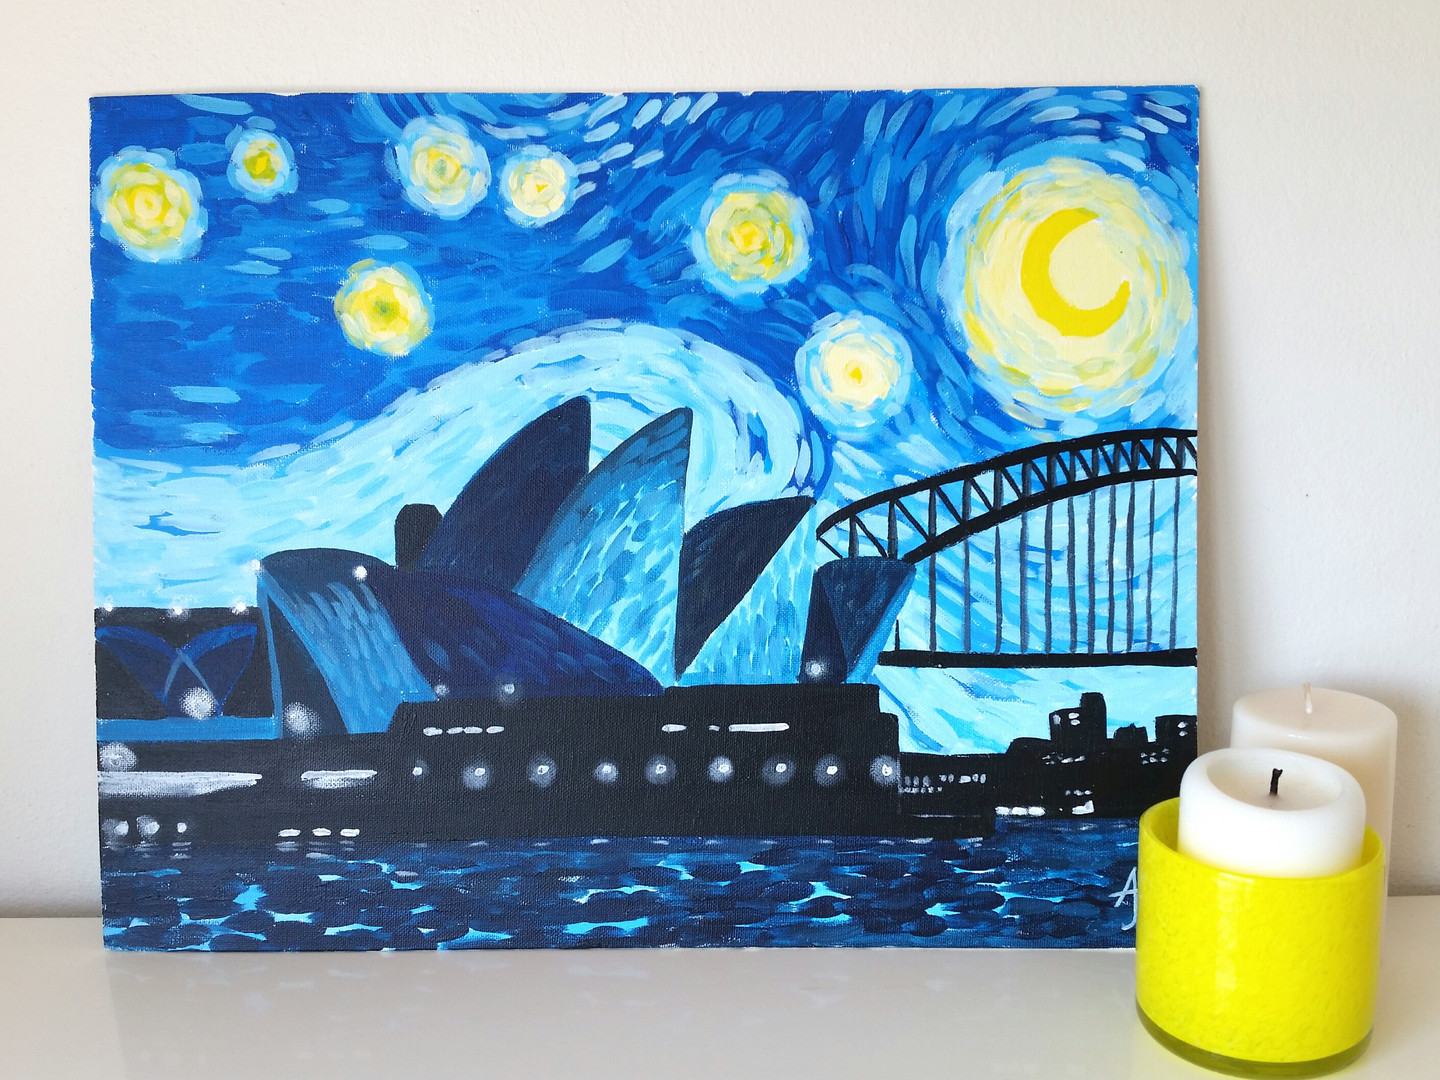 Sydney Starry Night